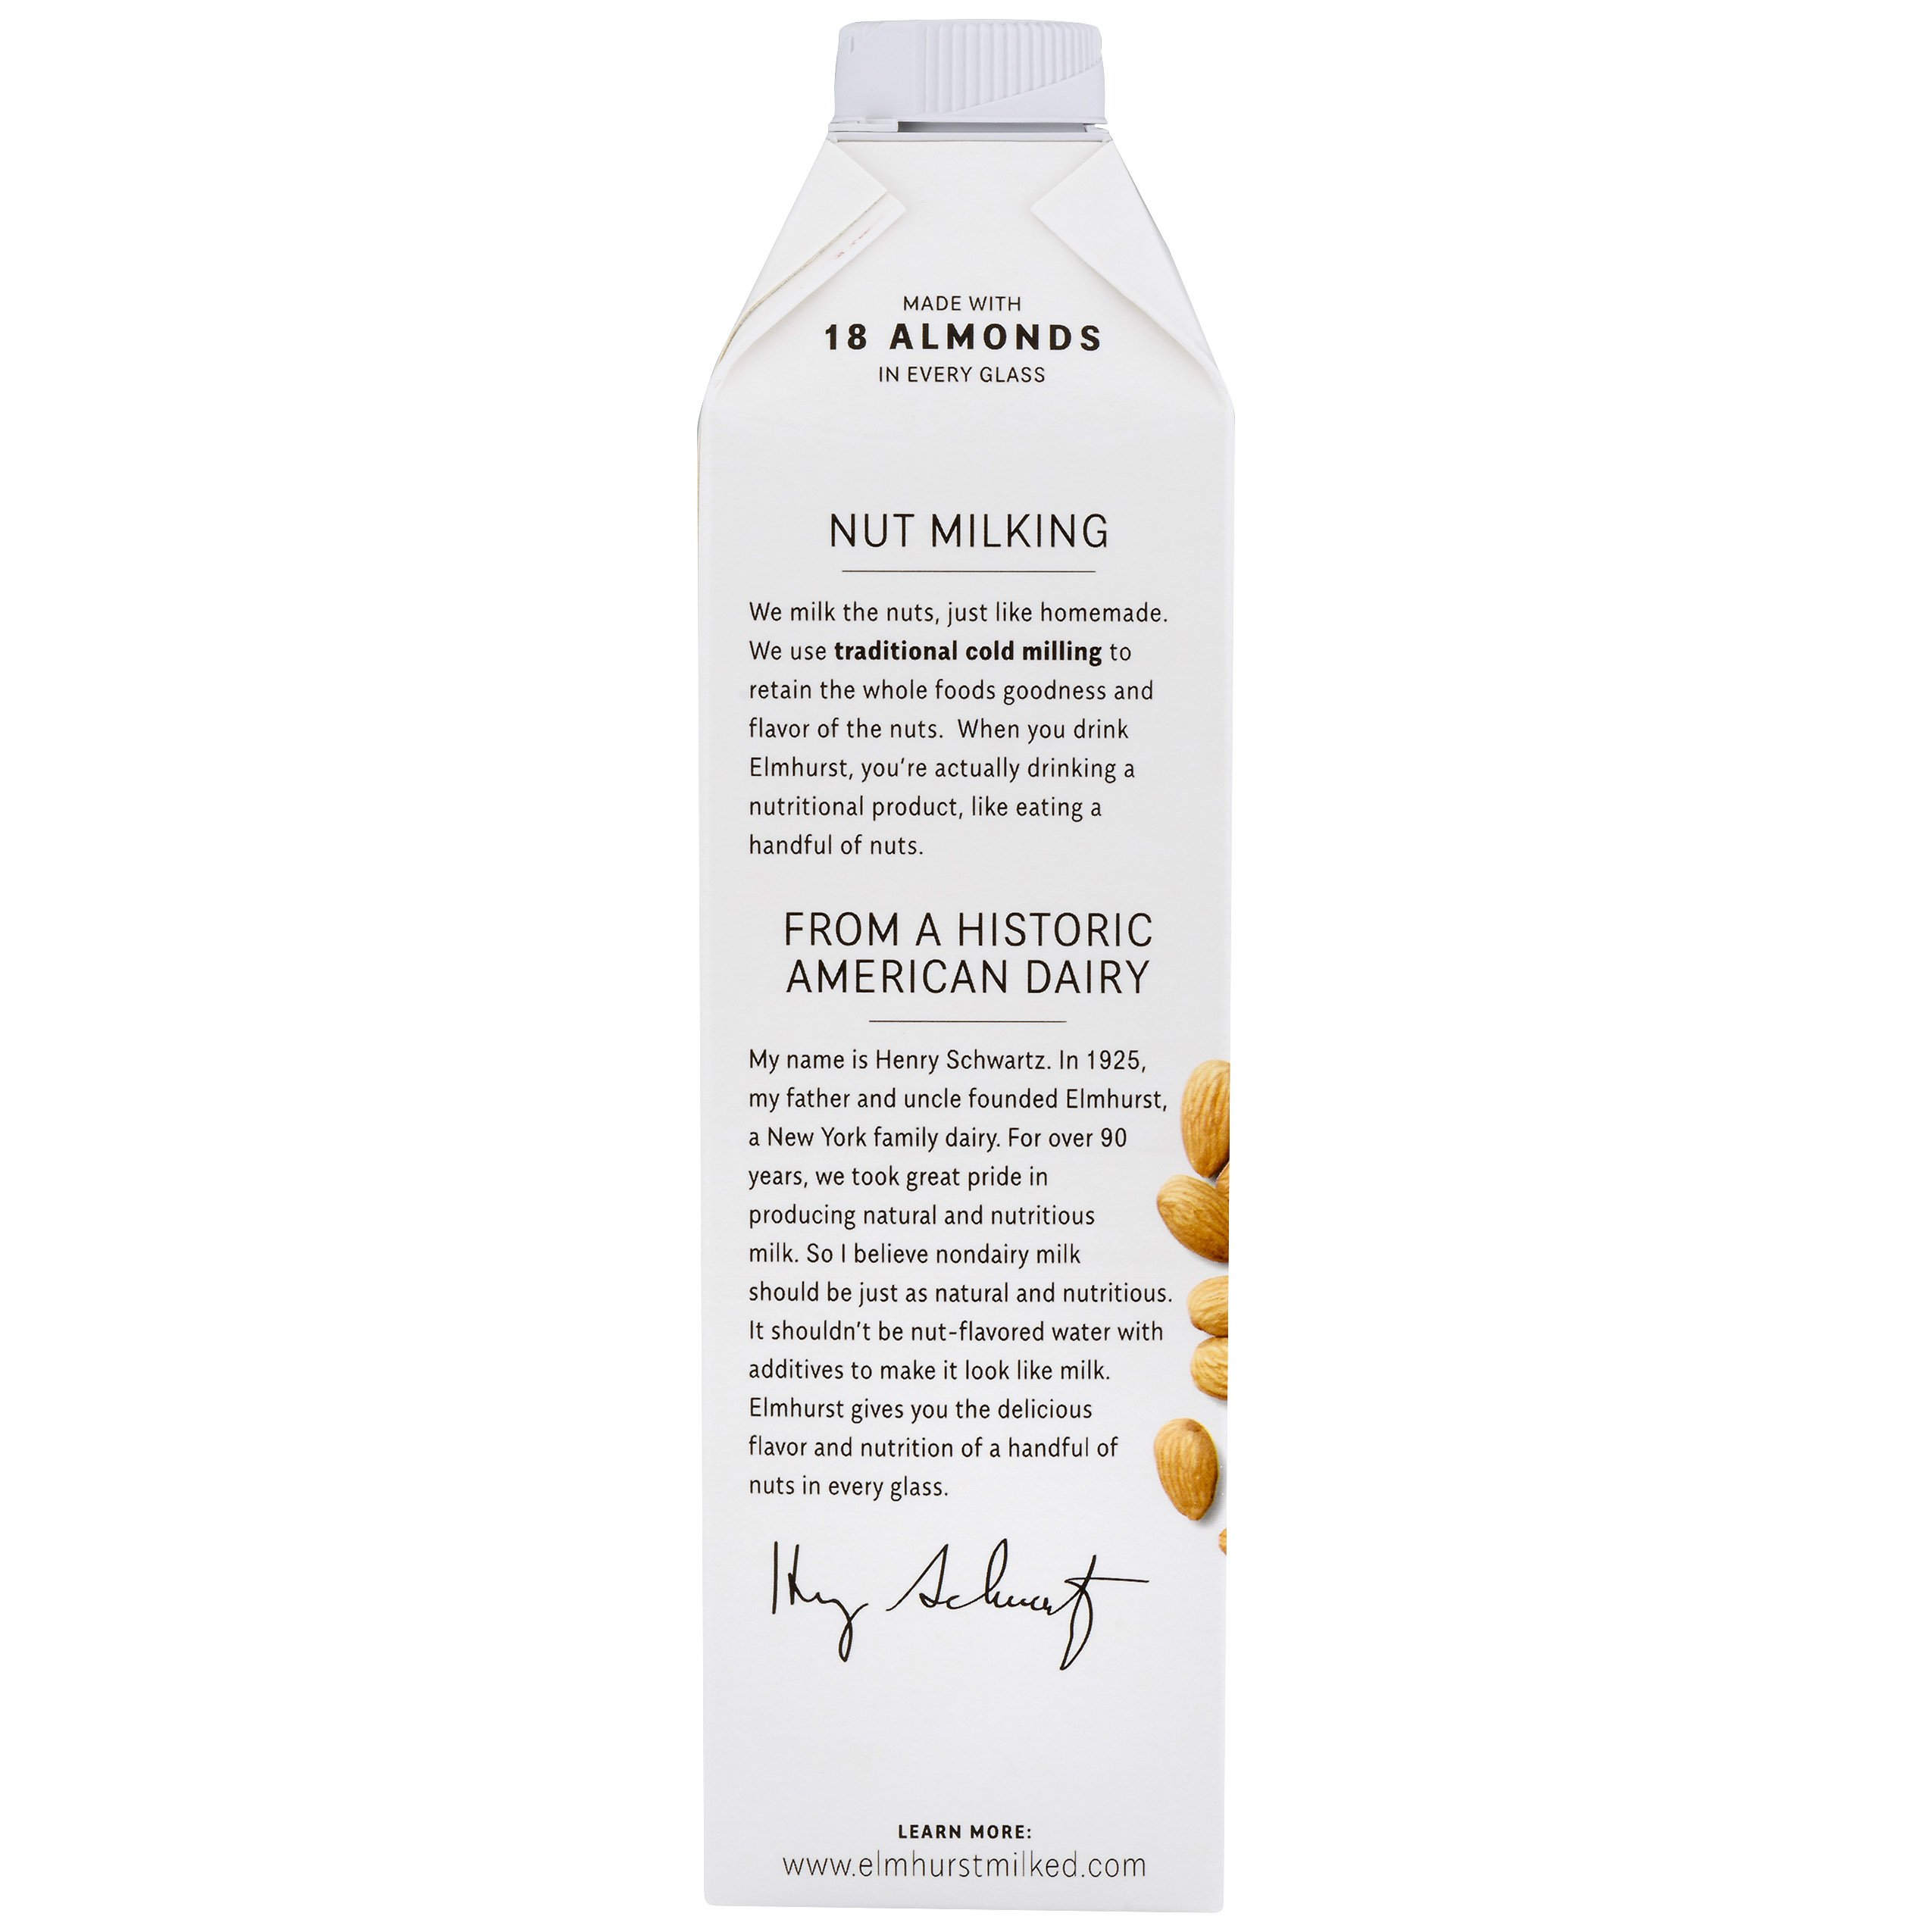 Elmhurst Milked - Almond Milk - 32 Fluid Ounces (Pack of 6) Only 5 Ingredients, 4X the Protein, Non Dairy, Keto Friendly, No Added Gums or Emulsifiers, Vegan by Elmhurst (Image #6)